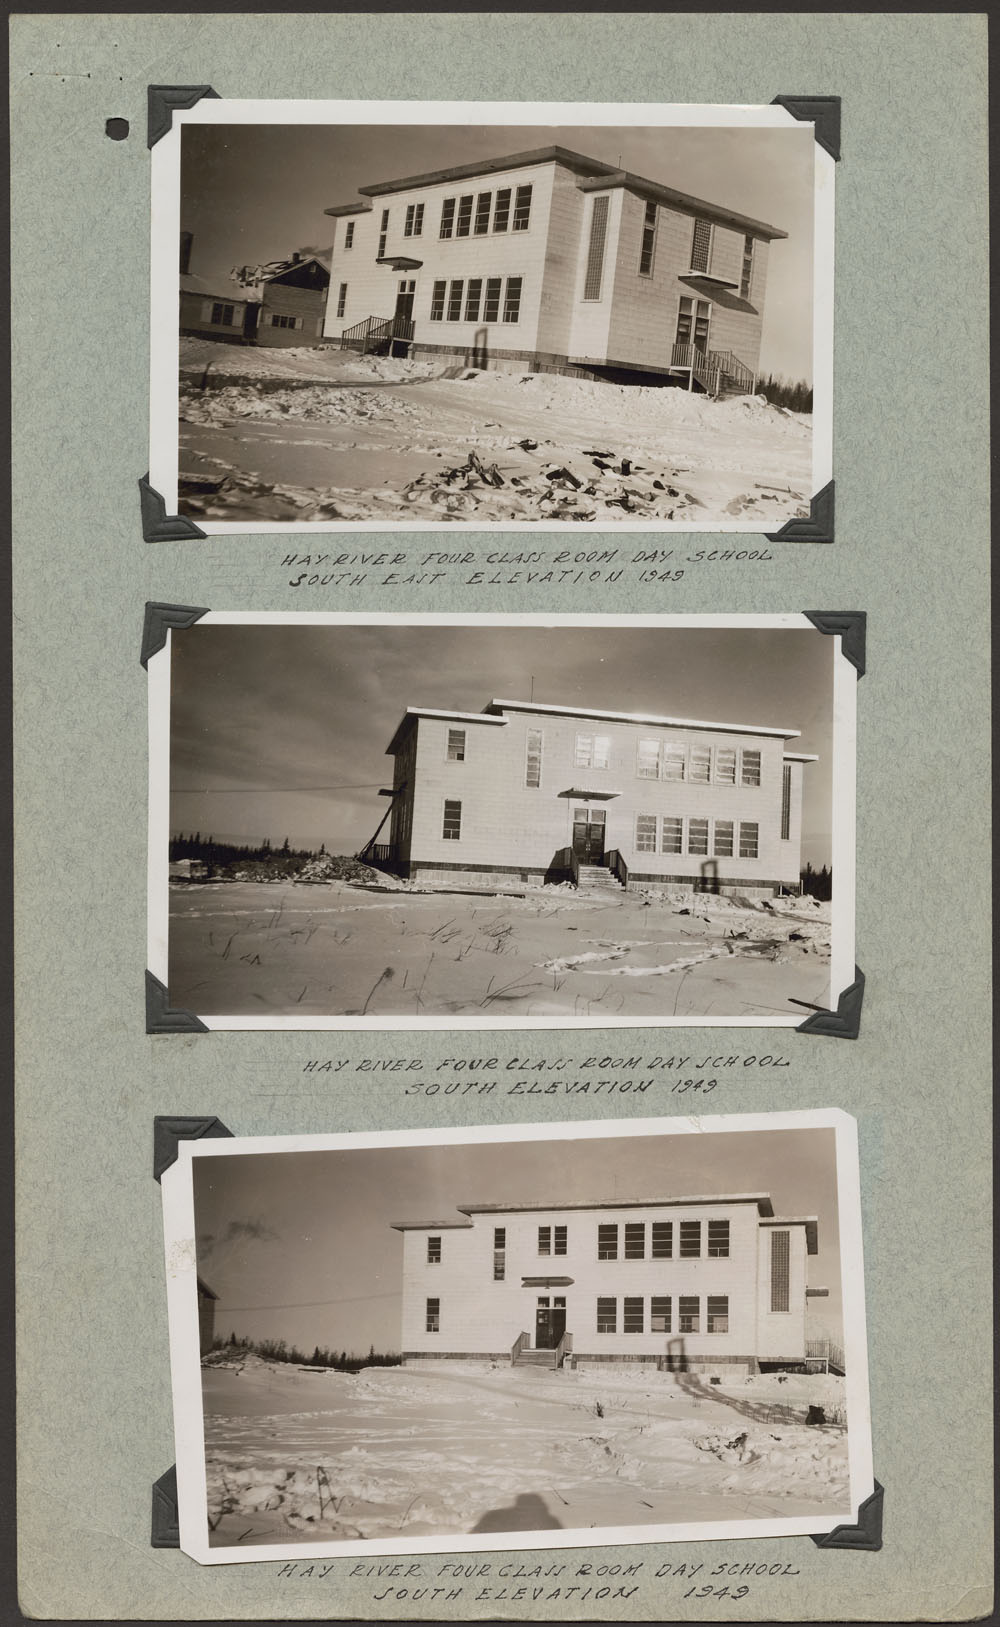 [Hay River] Federal Indian Day School, three views of the south elevation, 1949